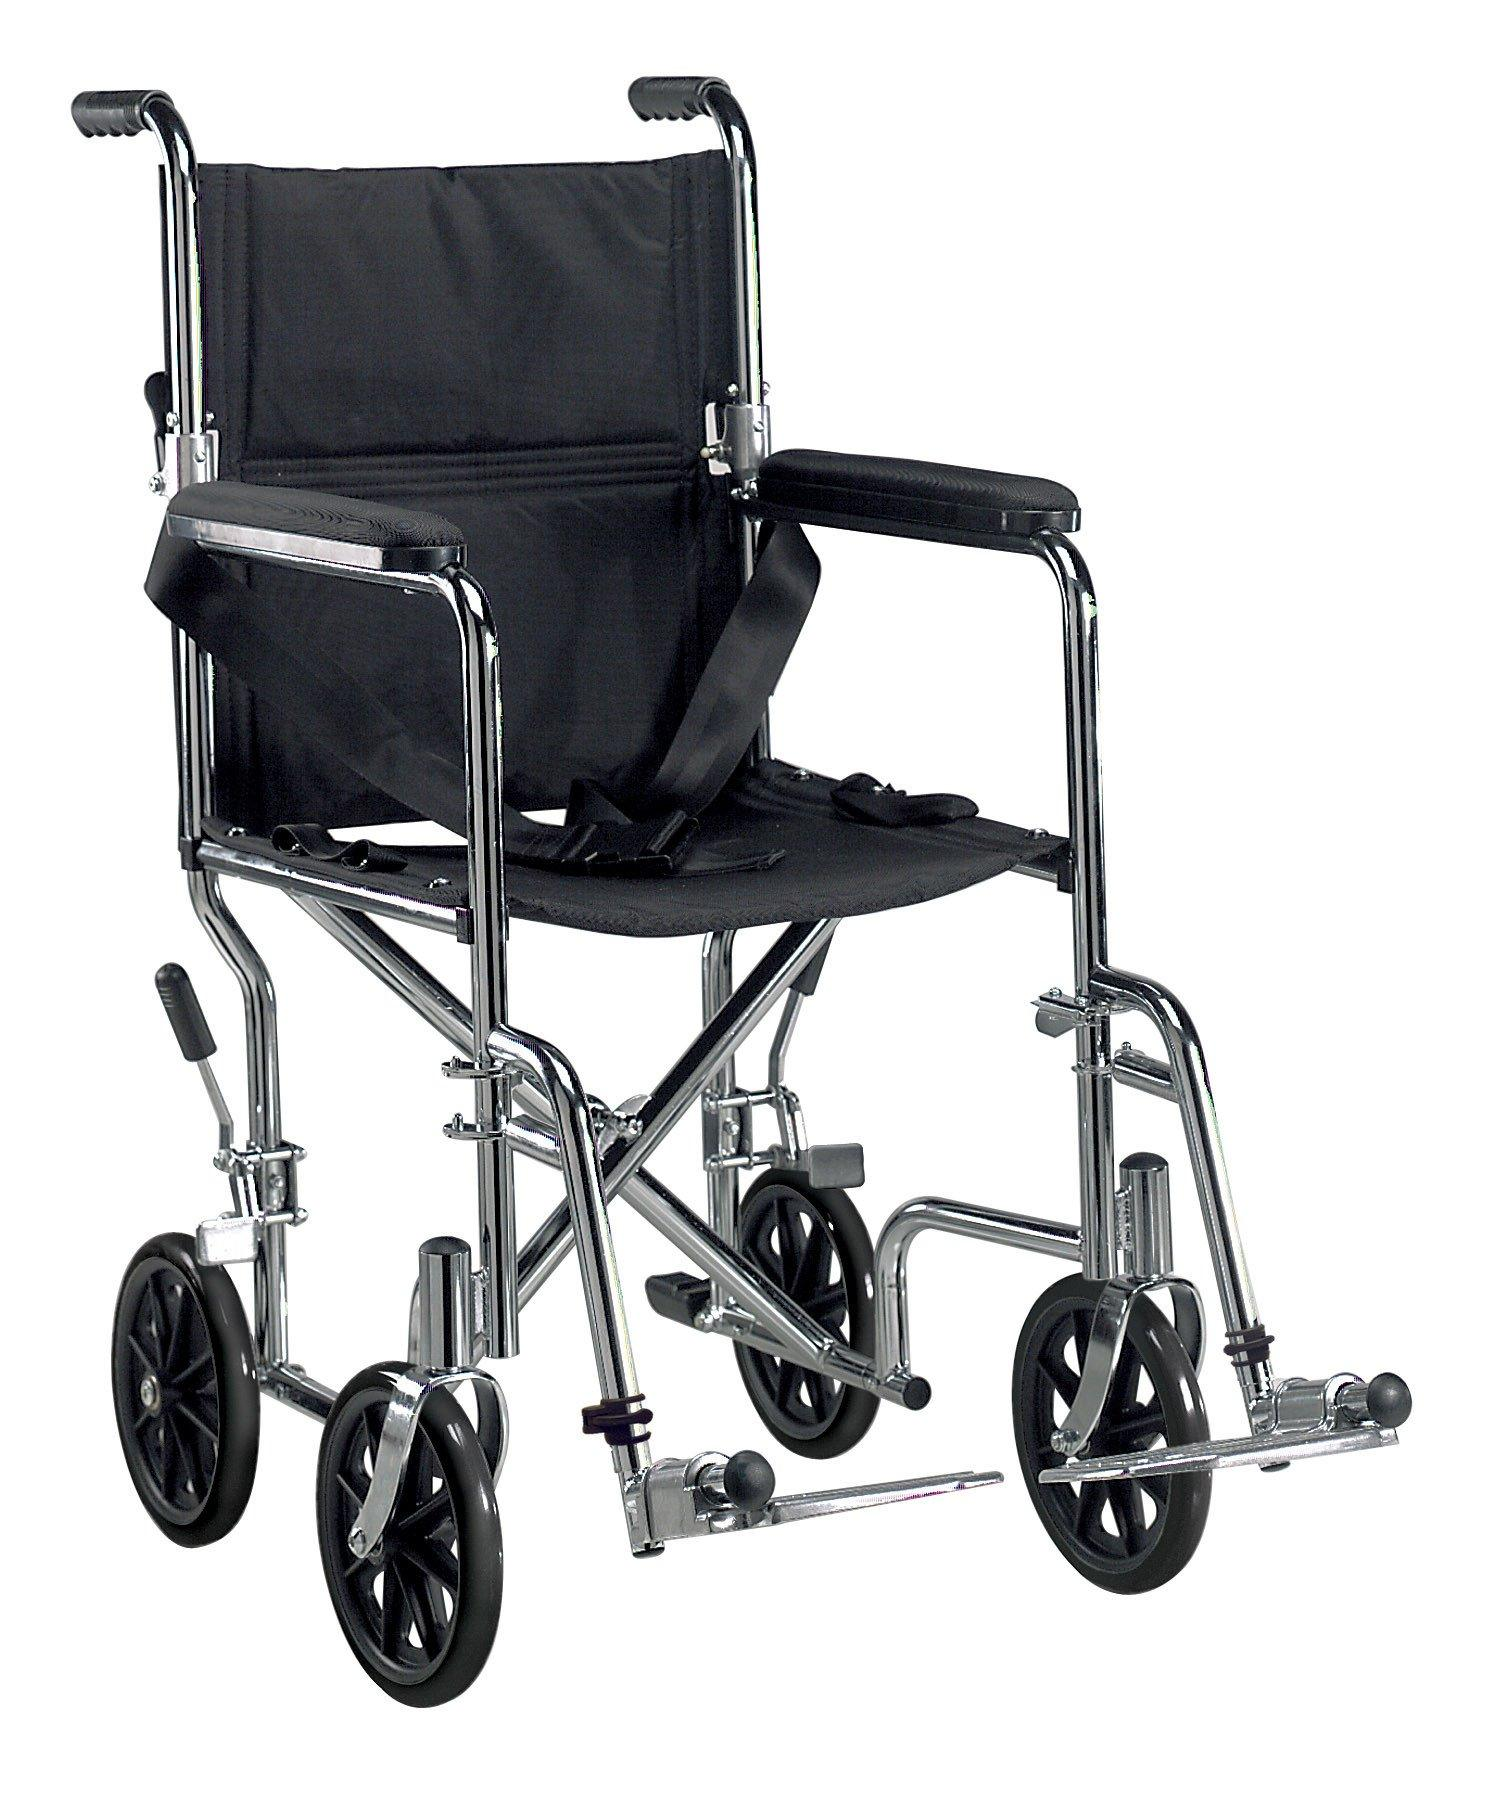 Drive Go Cart Light Weight Steel Transport Wheelchair